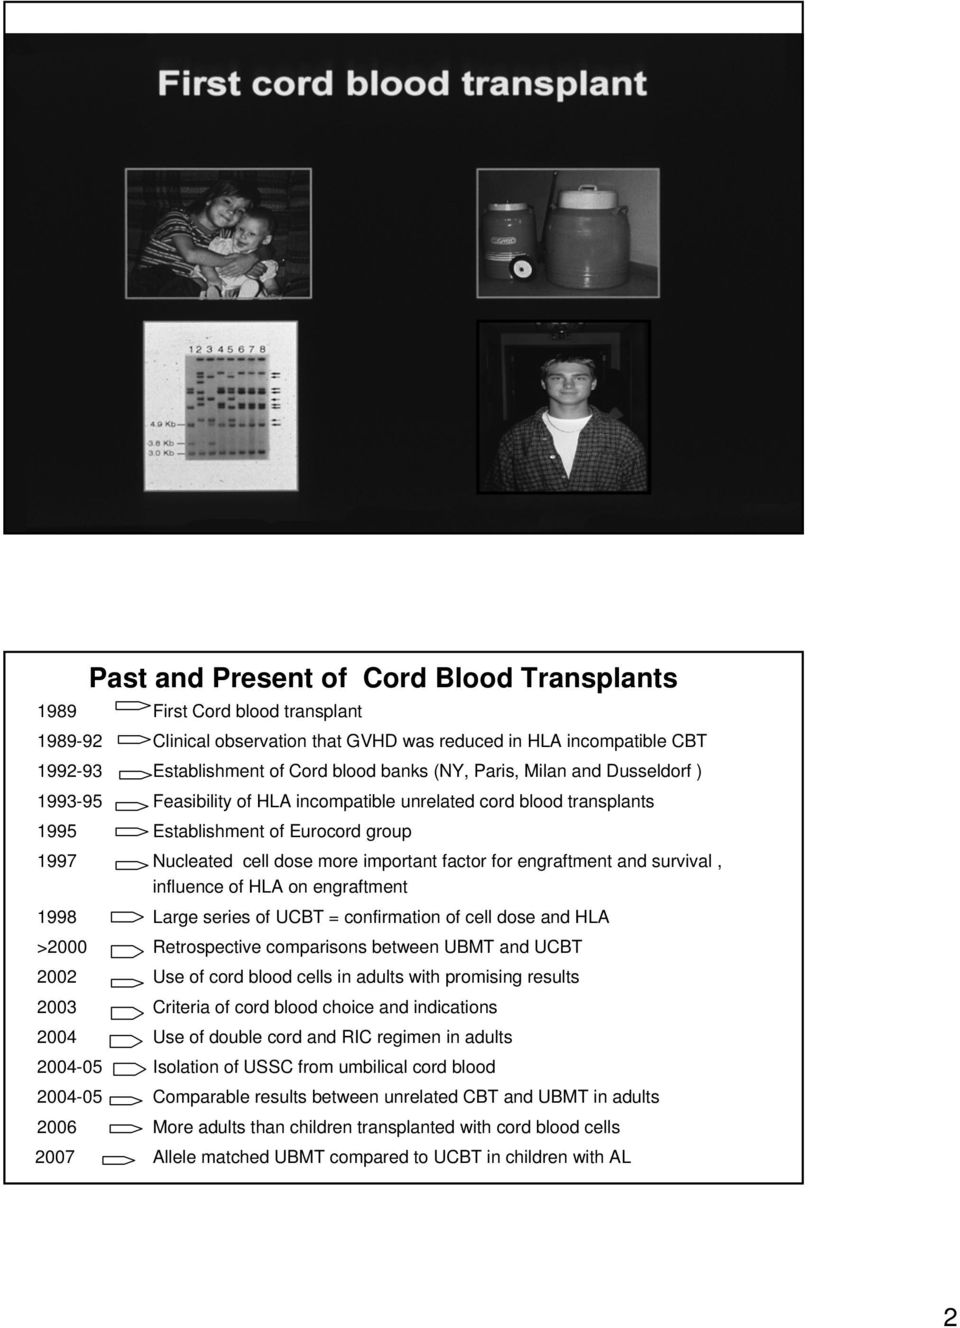 engraftment and survival, influence of HLA on engraftment 1998 Large series of UCBT = confirmation of cell dose and HLA >2000 Retrospective comparisons between UBMT and UCBT 2002 Use of cord blood